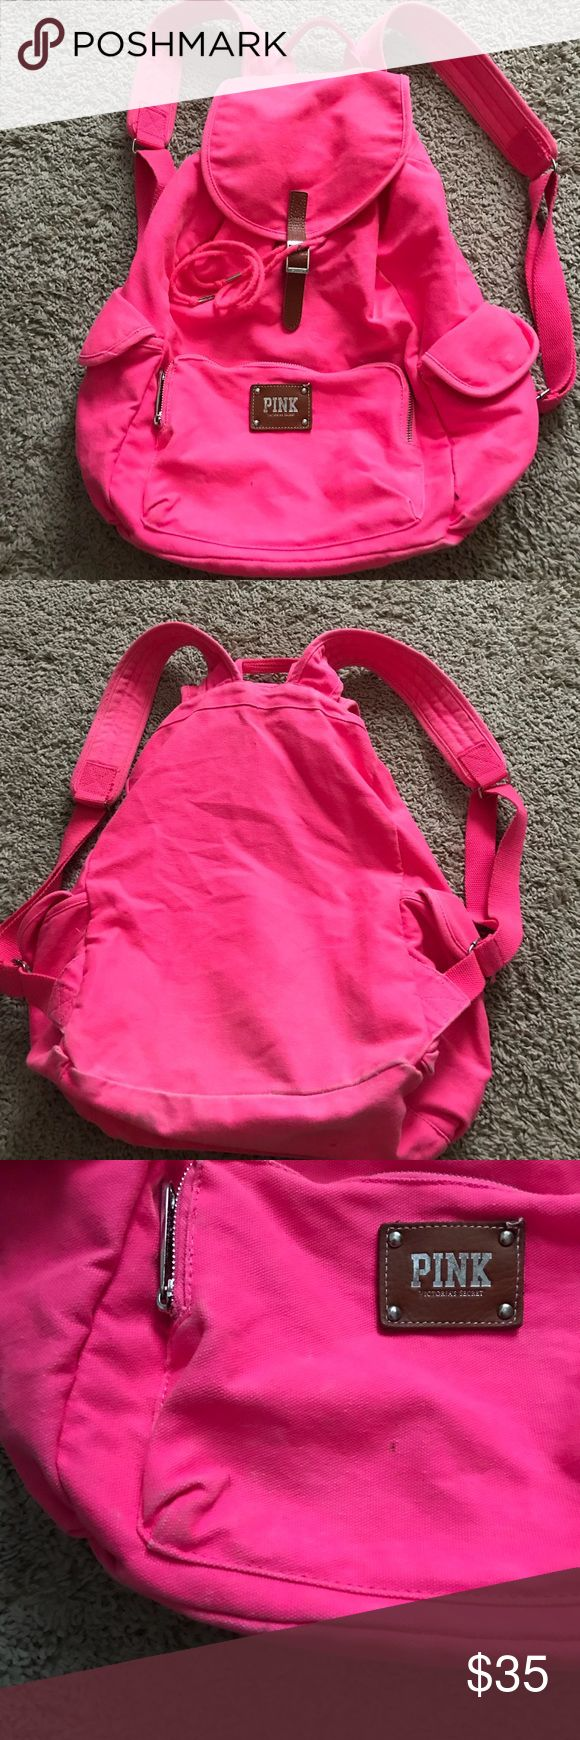 Victoria Secret Pink Brand Back Pack Hot Pink  Victoria Secret Vintage PINK brand backpack. Please note it is USED. No hole, rips or tears. There are minor marks and faded spots. The pictures do a pretty good job of showing the overall look of the bag. Please view all pictures and take note that it is in used condition. Please ask questions and make offers. No trades. It is Hot Pink in color with leather closure. Thanks!! PINK Victoria's Secret Bags Backpacks